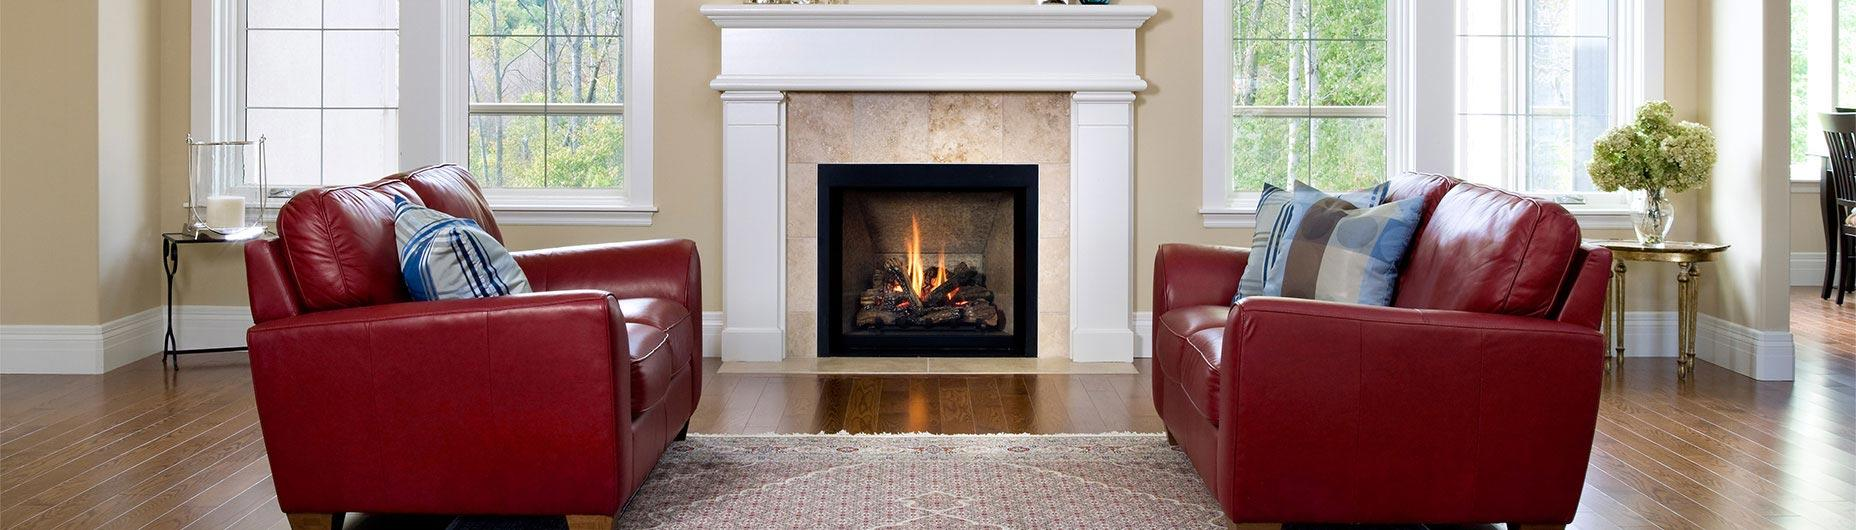 fireplace installations bbq grill store monmouth county nj rh eastcoastenergy com